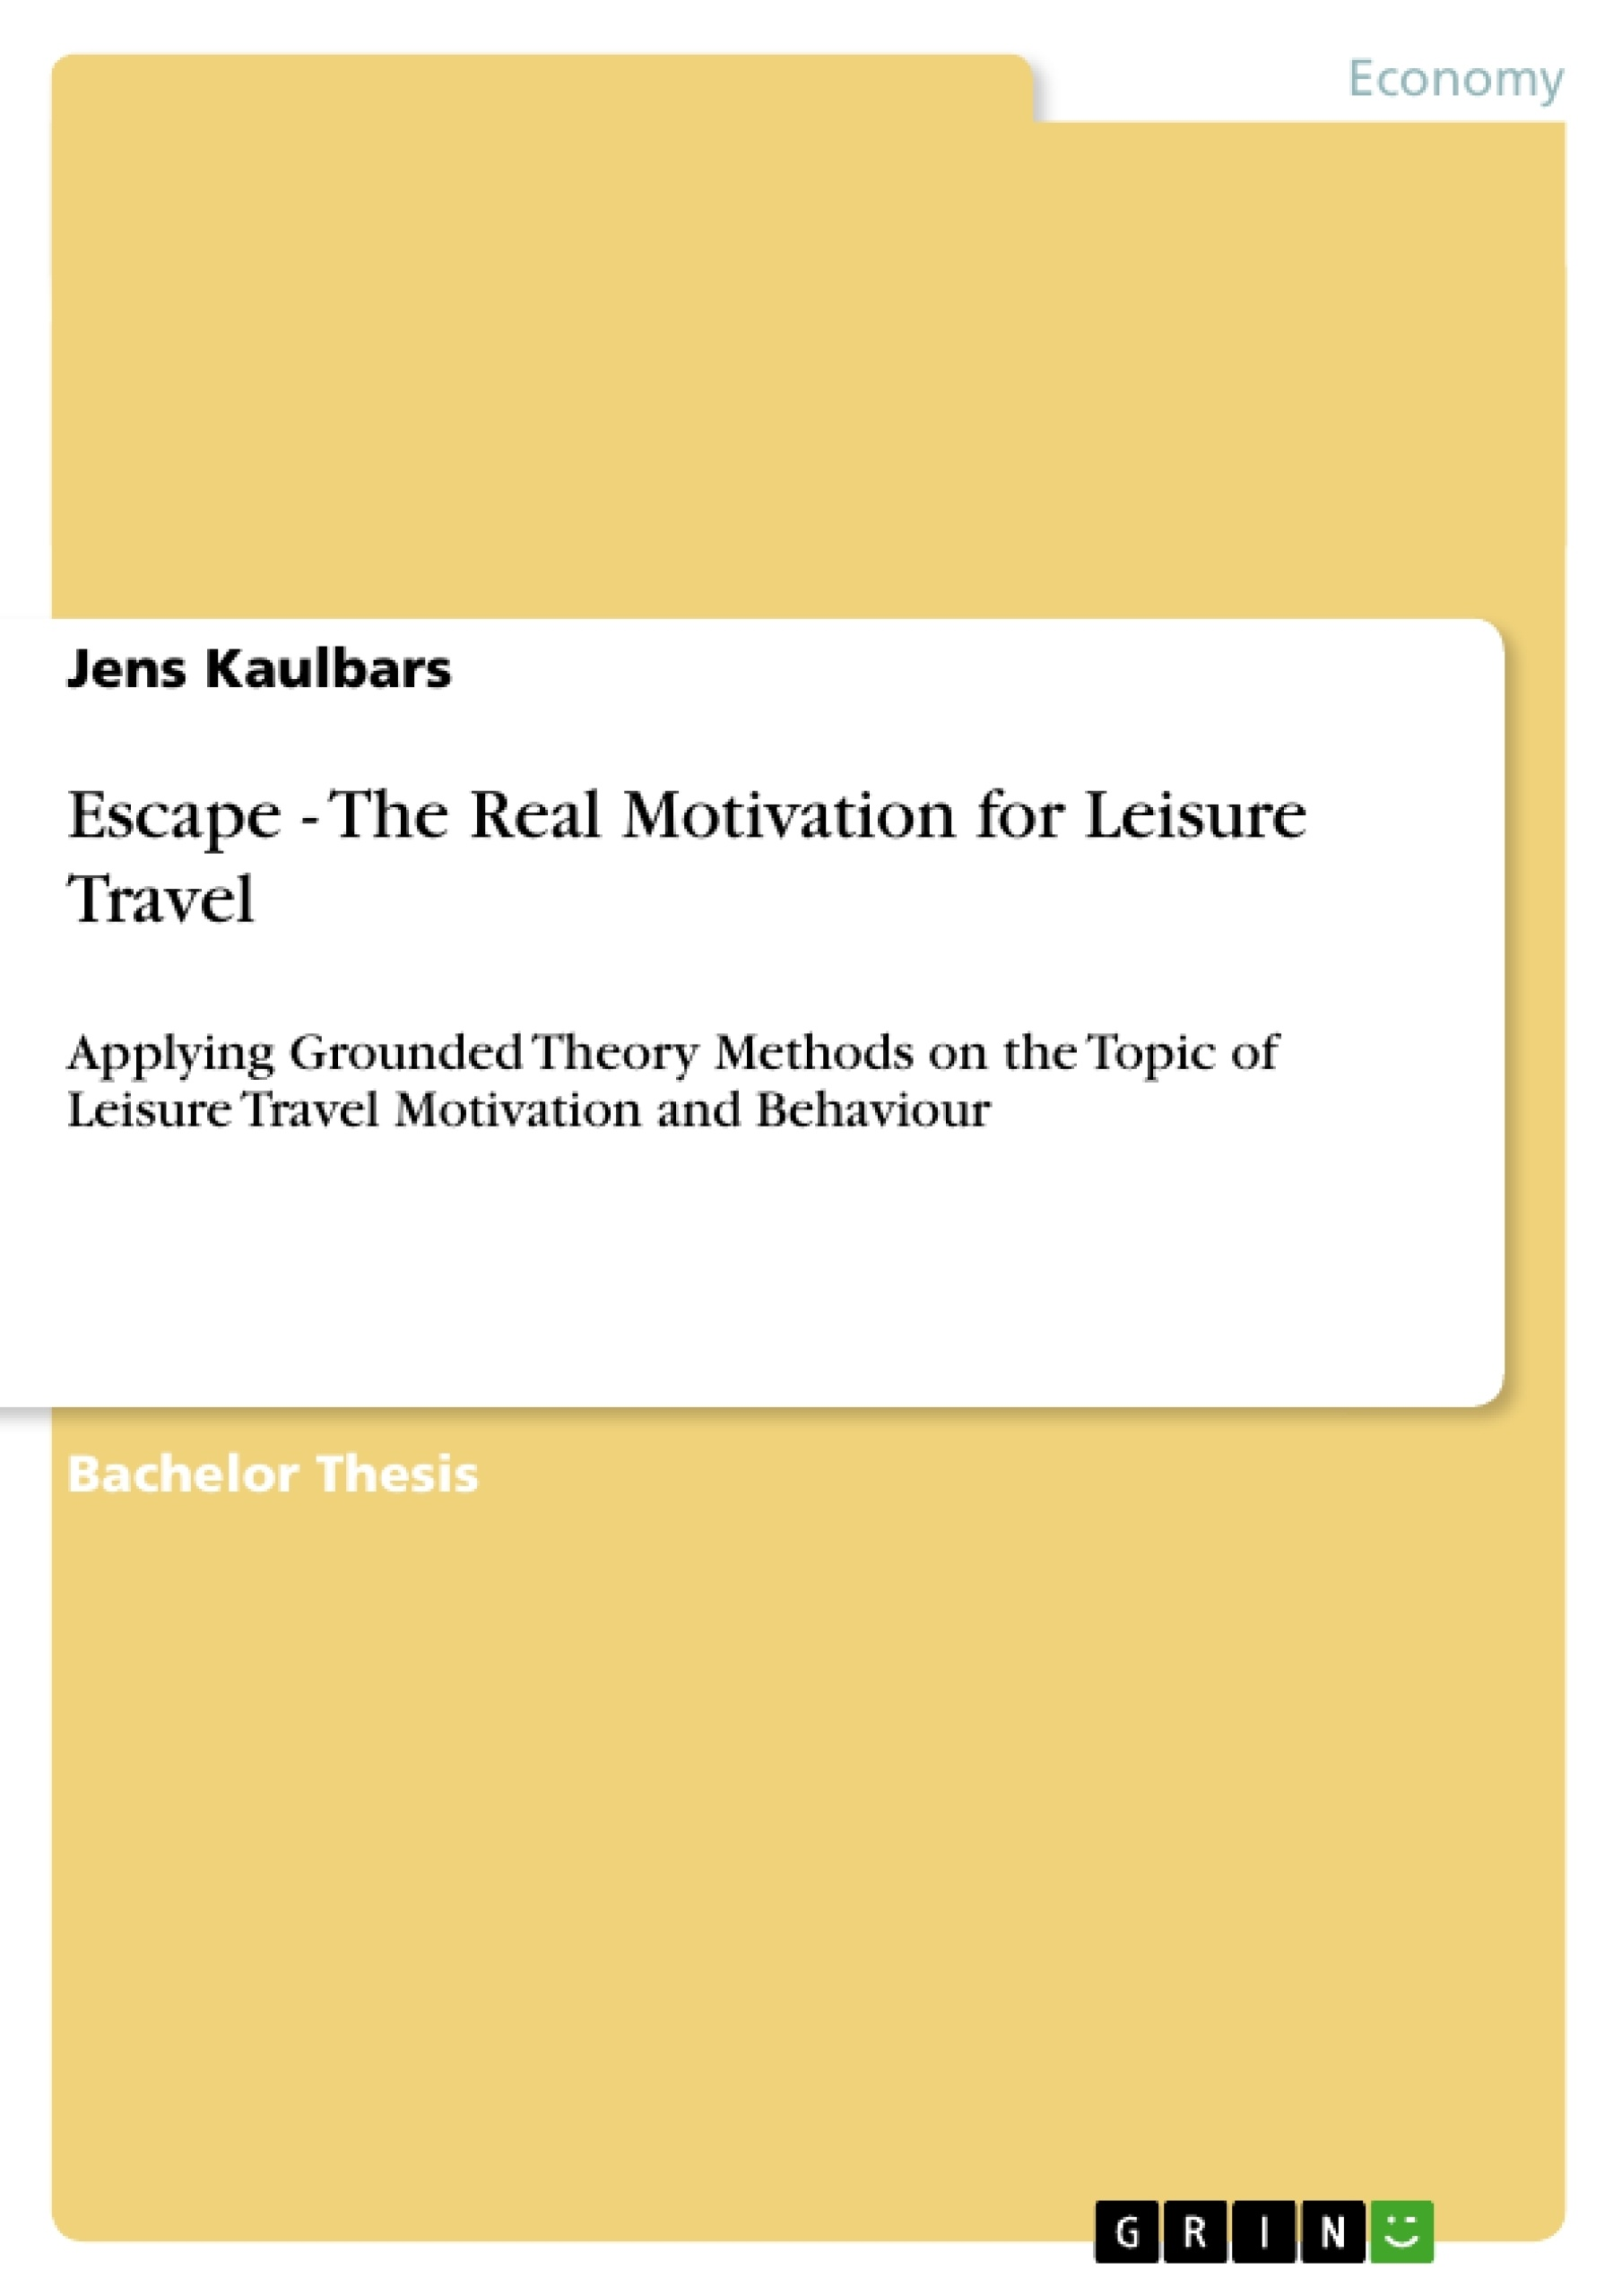 Title: Escape - The Real Motivation for Leisure Travel